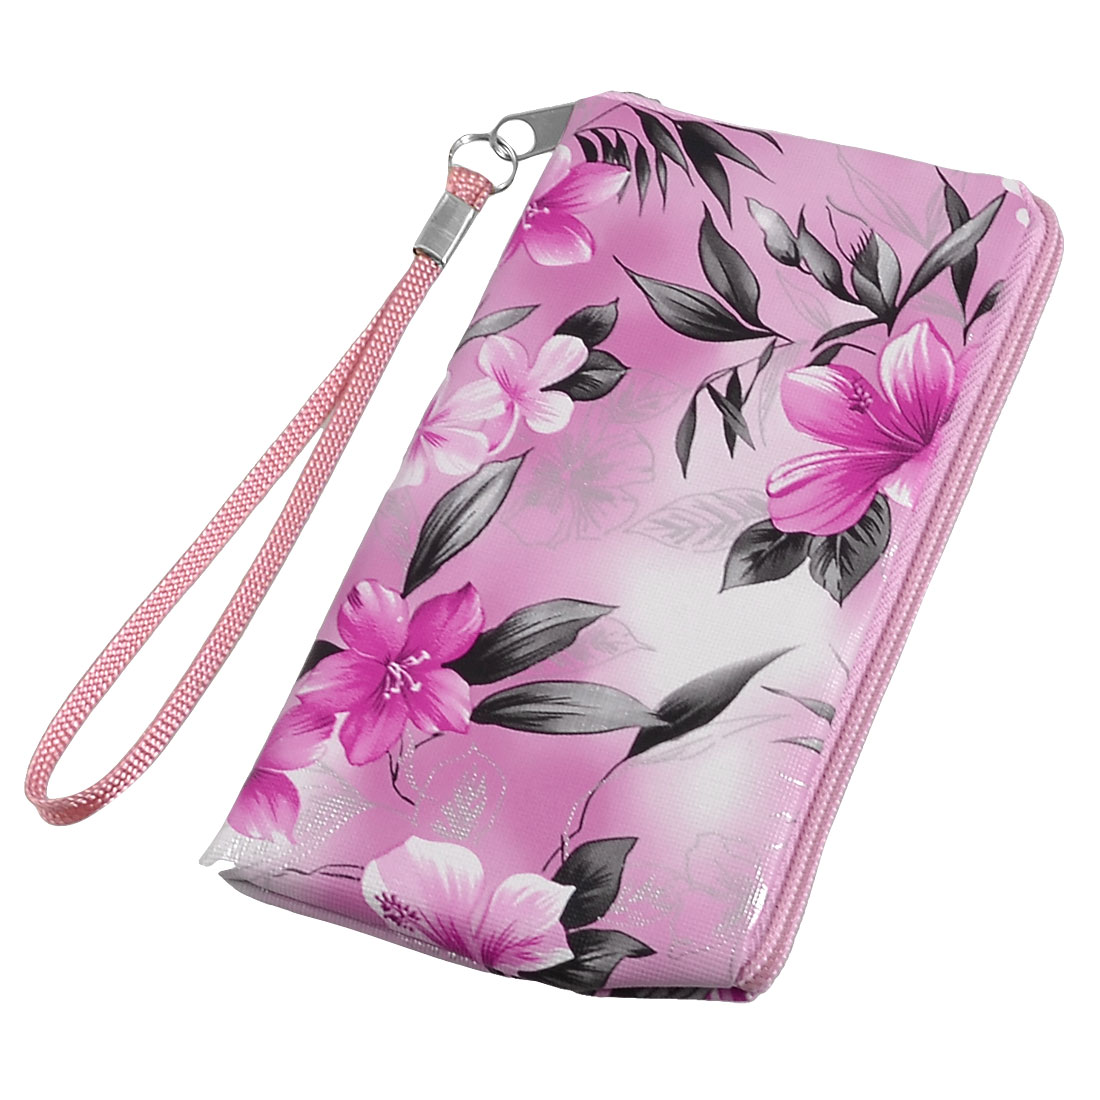 Gray Pink Floral Prints Cell Phone MP3 MP4 Pouch Bag w Strap